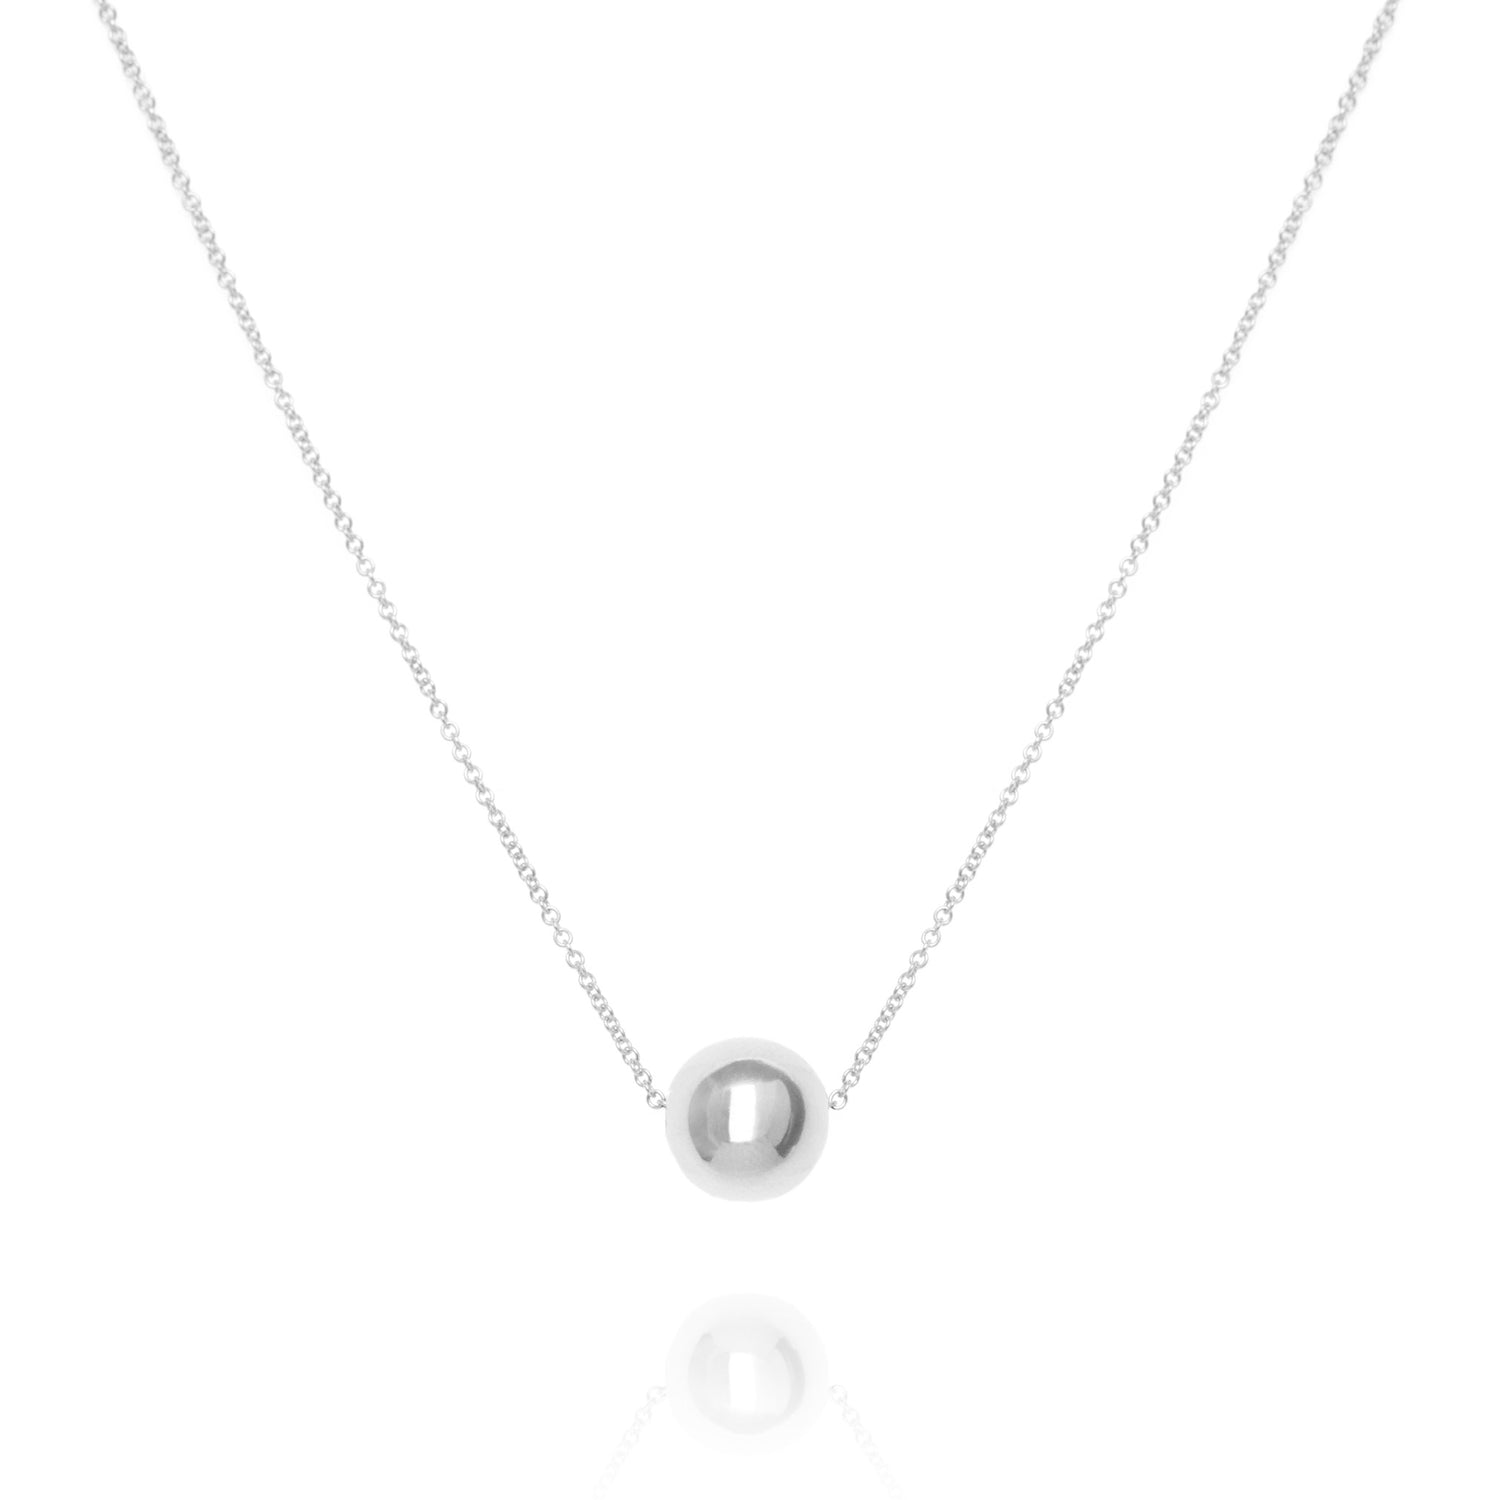 Large sphere necklace, silver